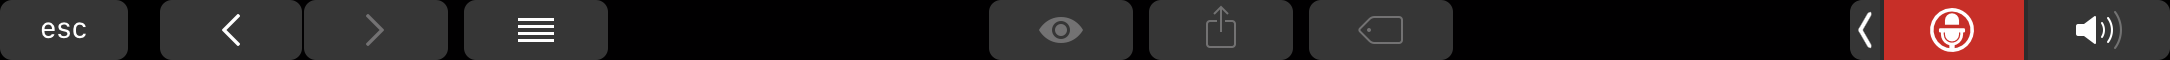 Muted icon of Mutify